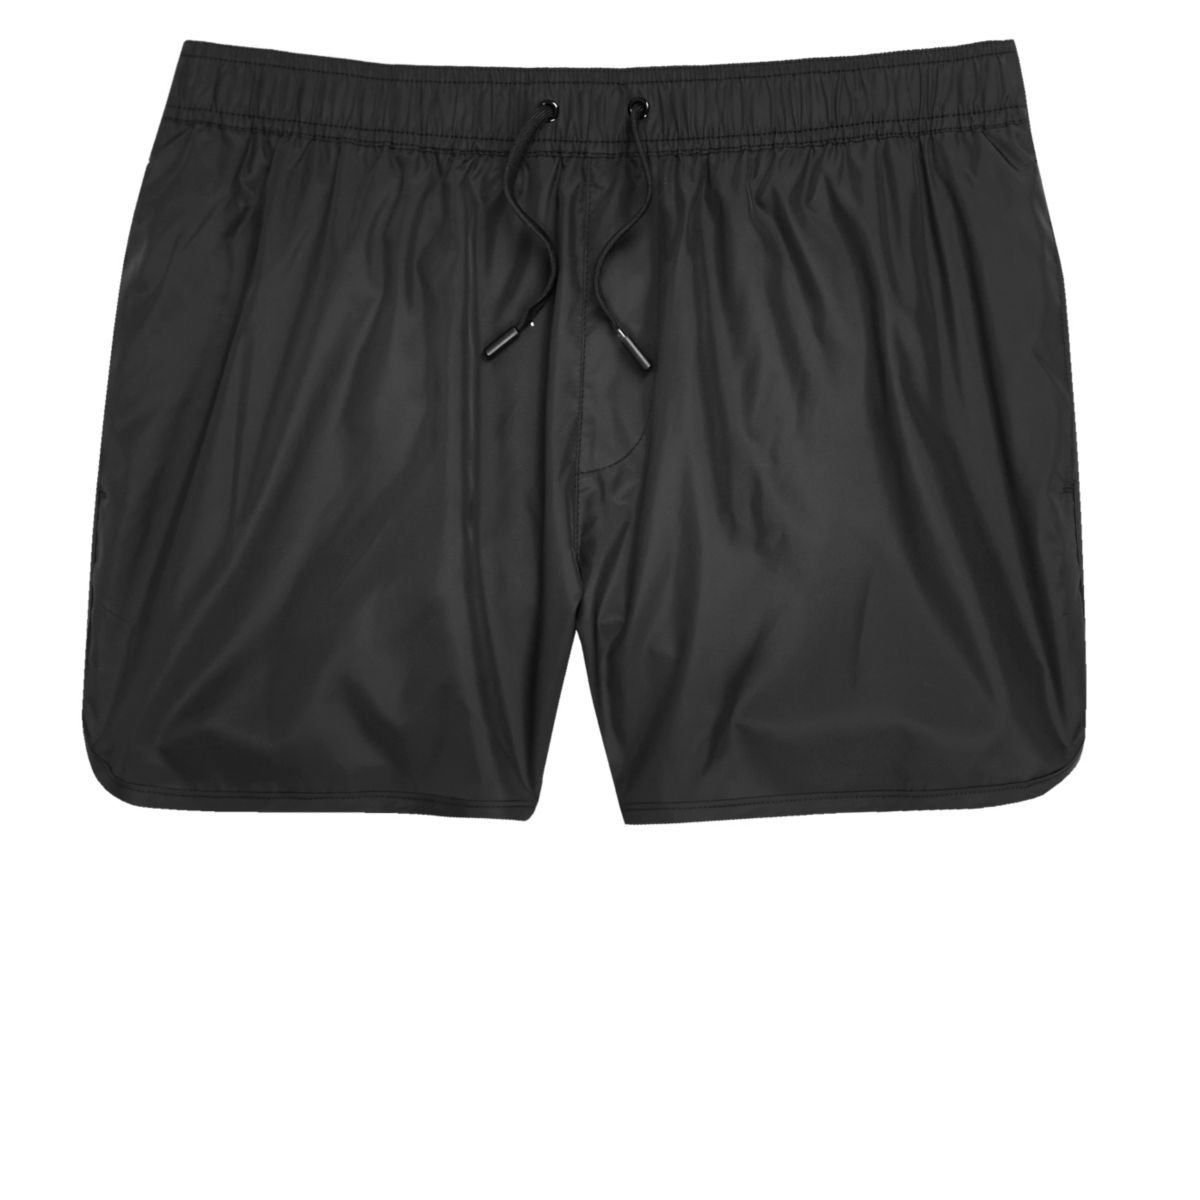 Black short swim trunks